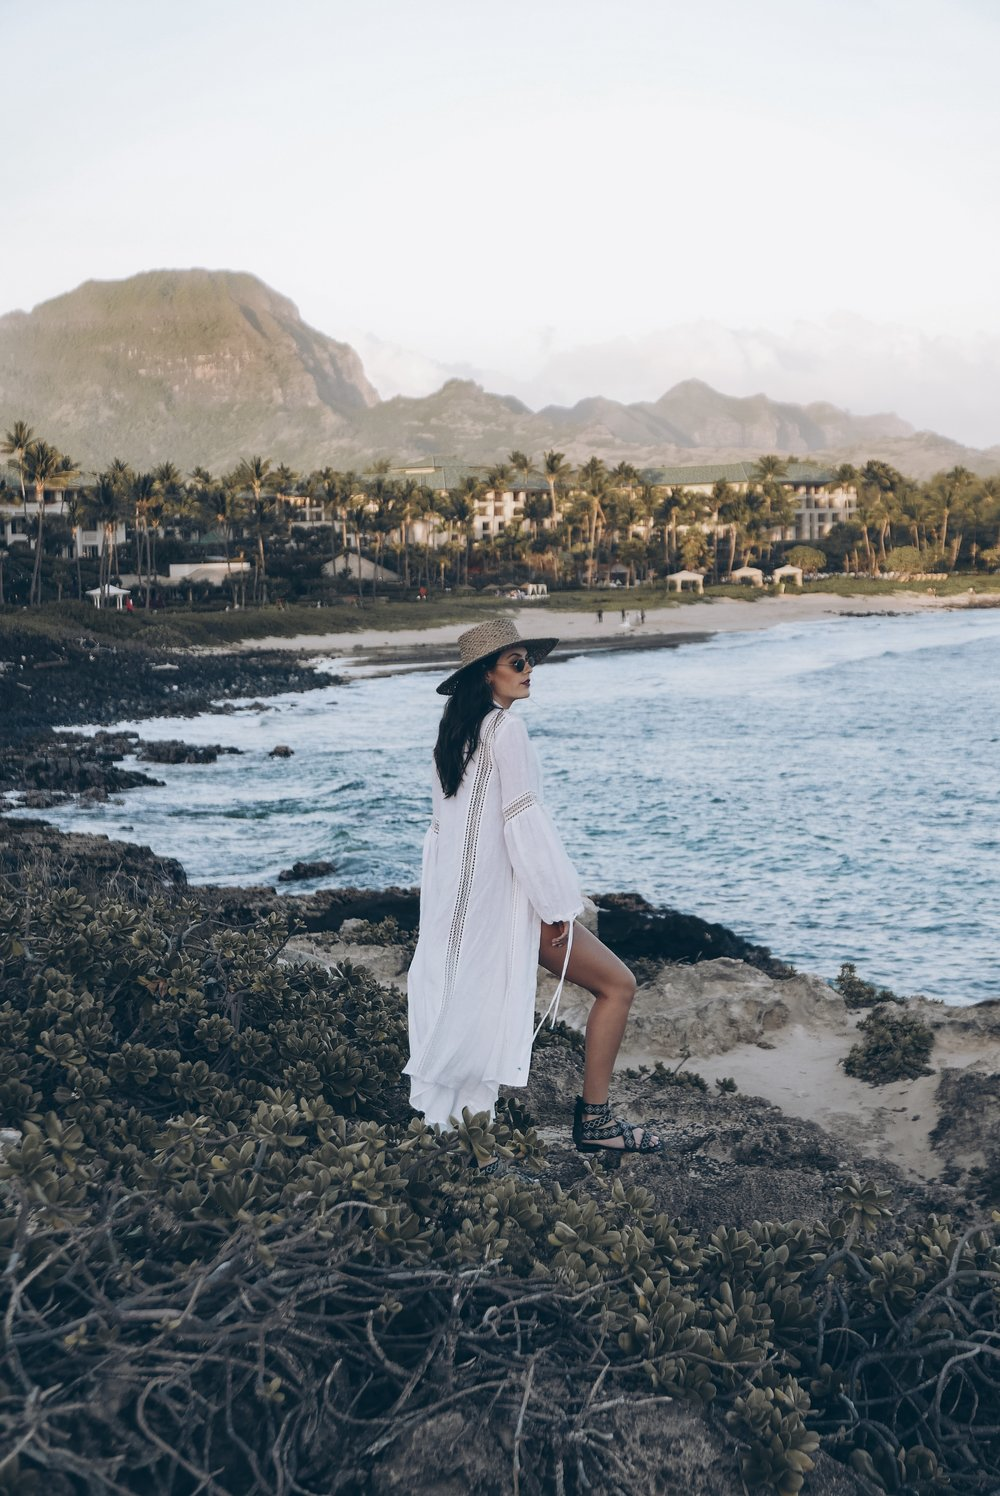 Boho Style - Kauai Travel Guide - Julia Friedman